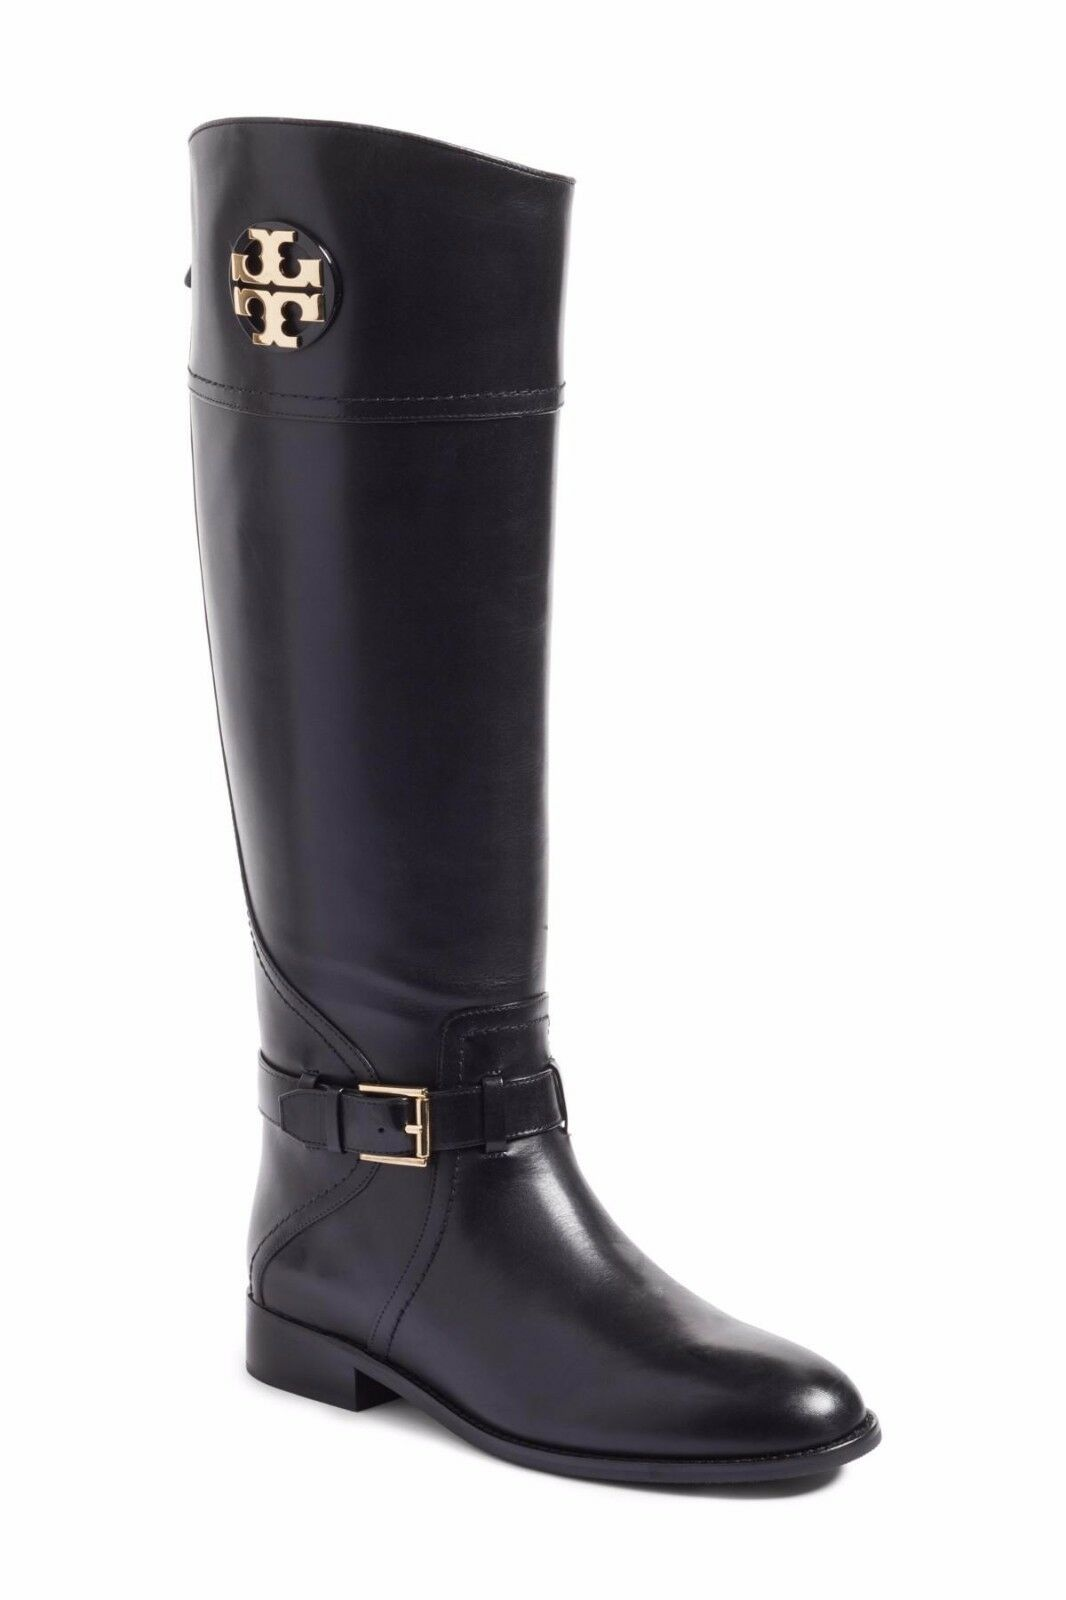 NIB Tory Burch Leather Adeline Boot Boots BLACK WIDE Calf 9.5 M